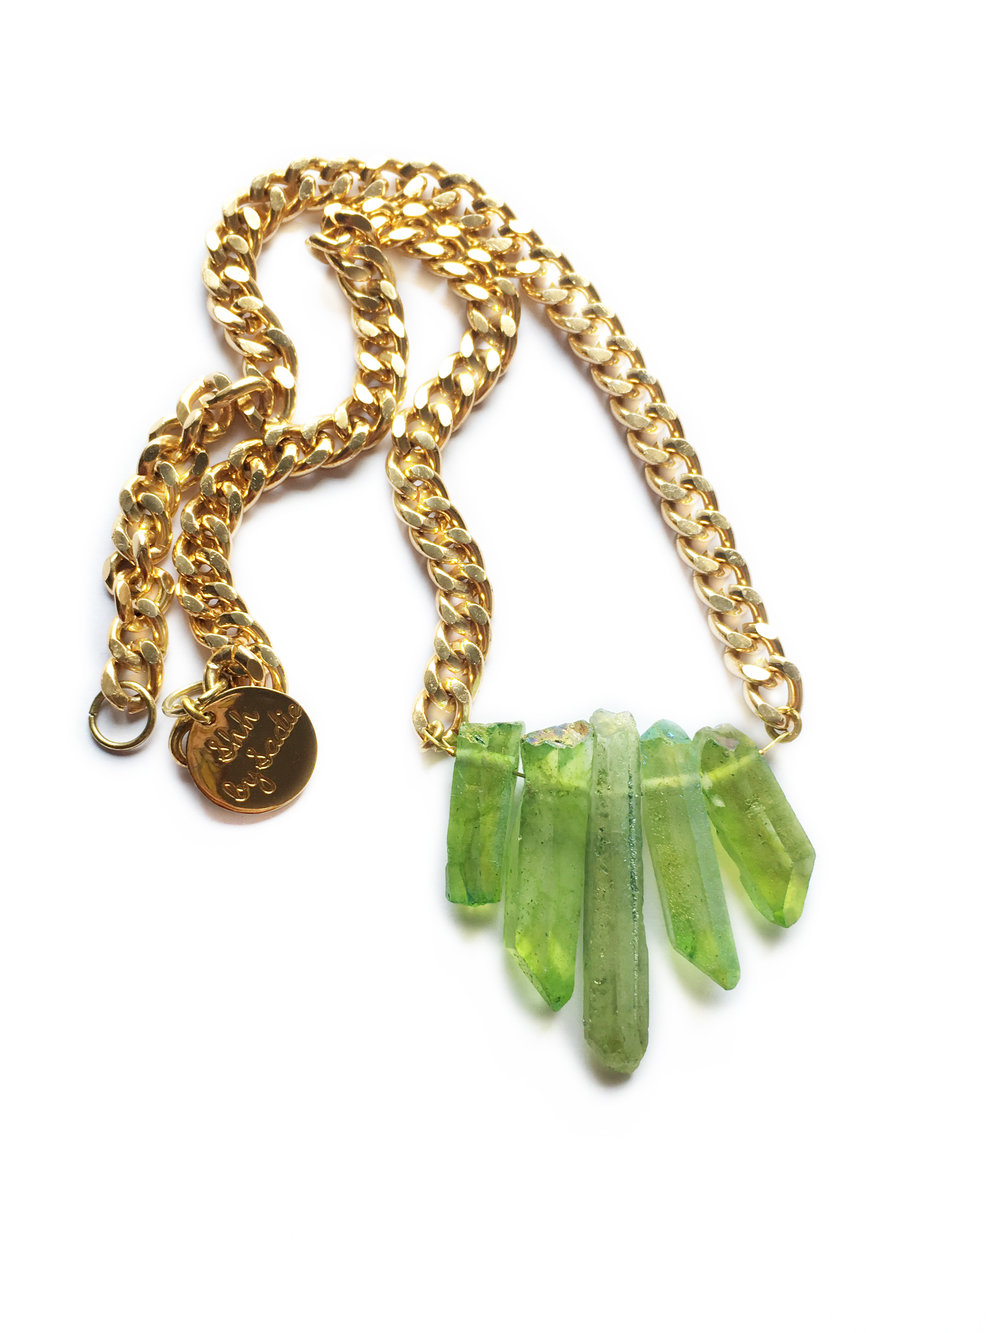 Green crystal quartz necklace handmade in England by British jewellery designer shh by sadie